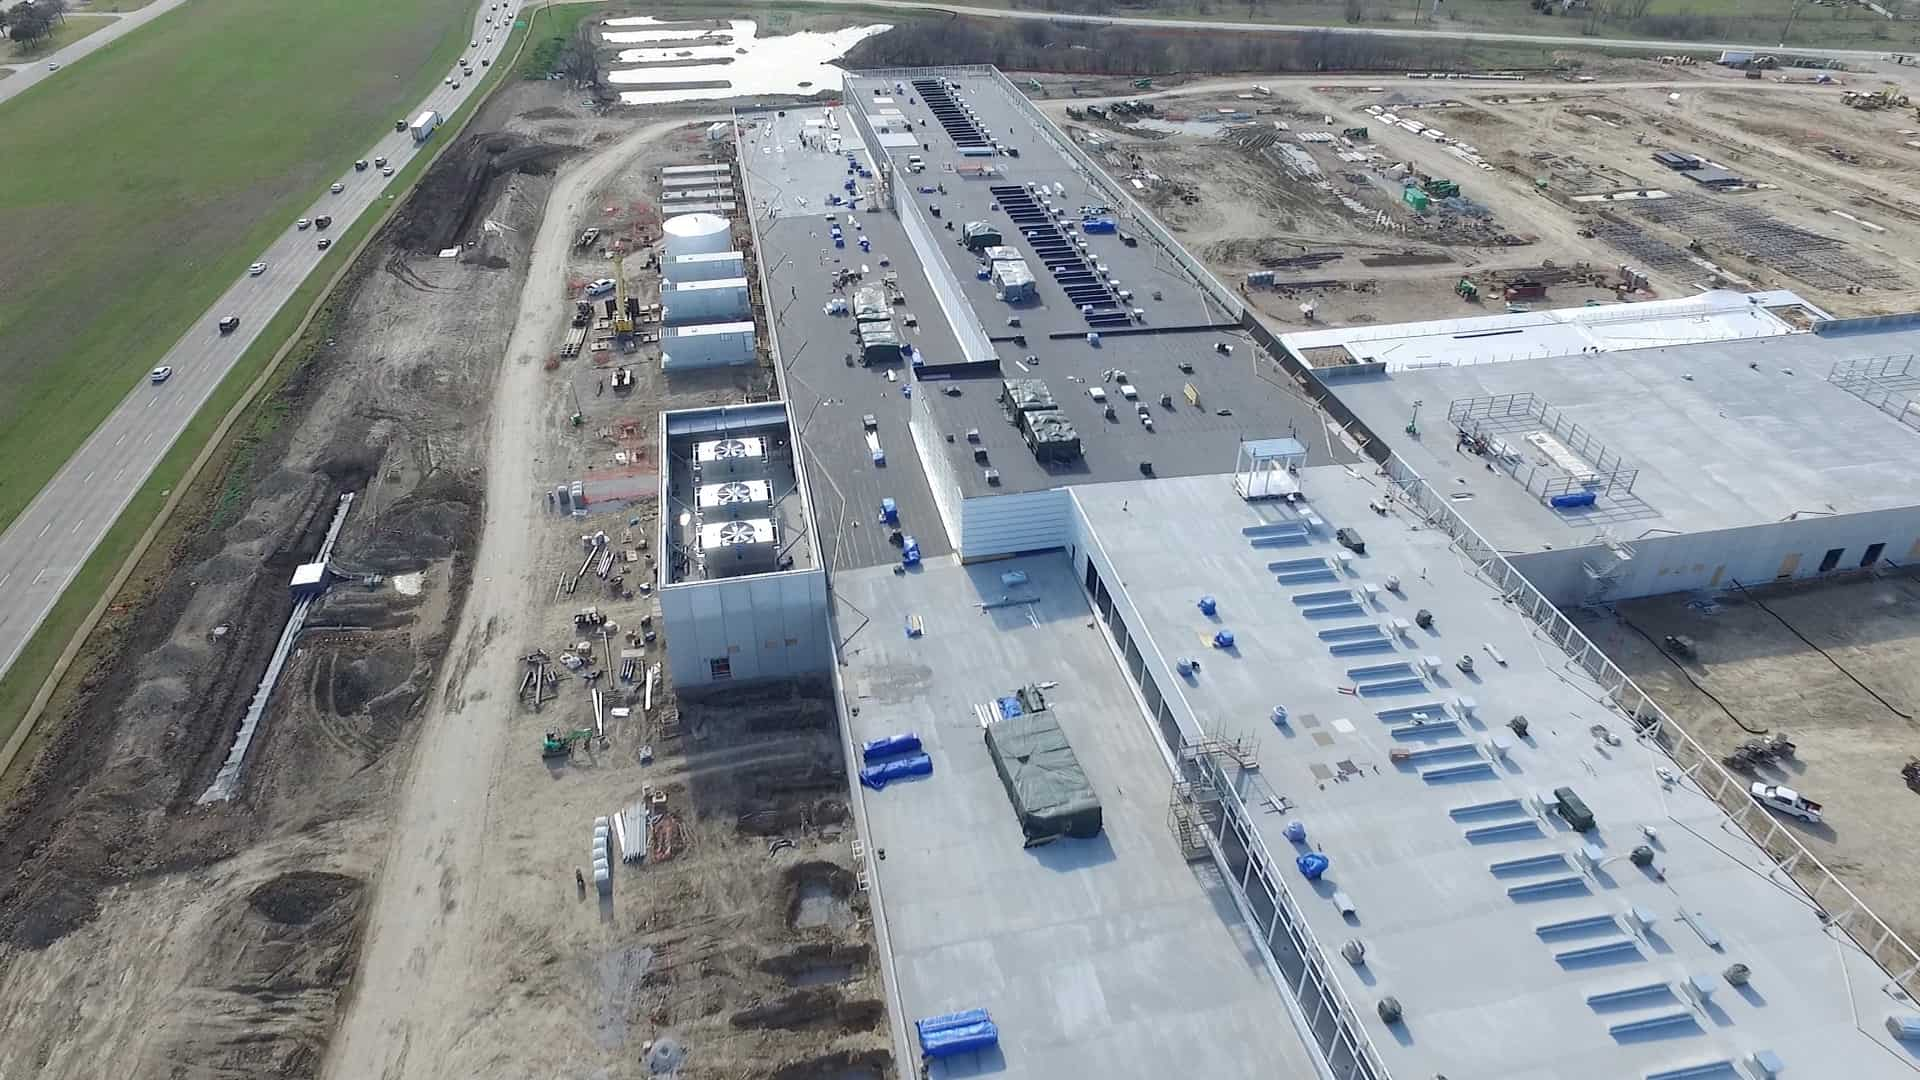 Facebook Fort Worth Data Center Drone Flyover The Geek Pub